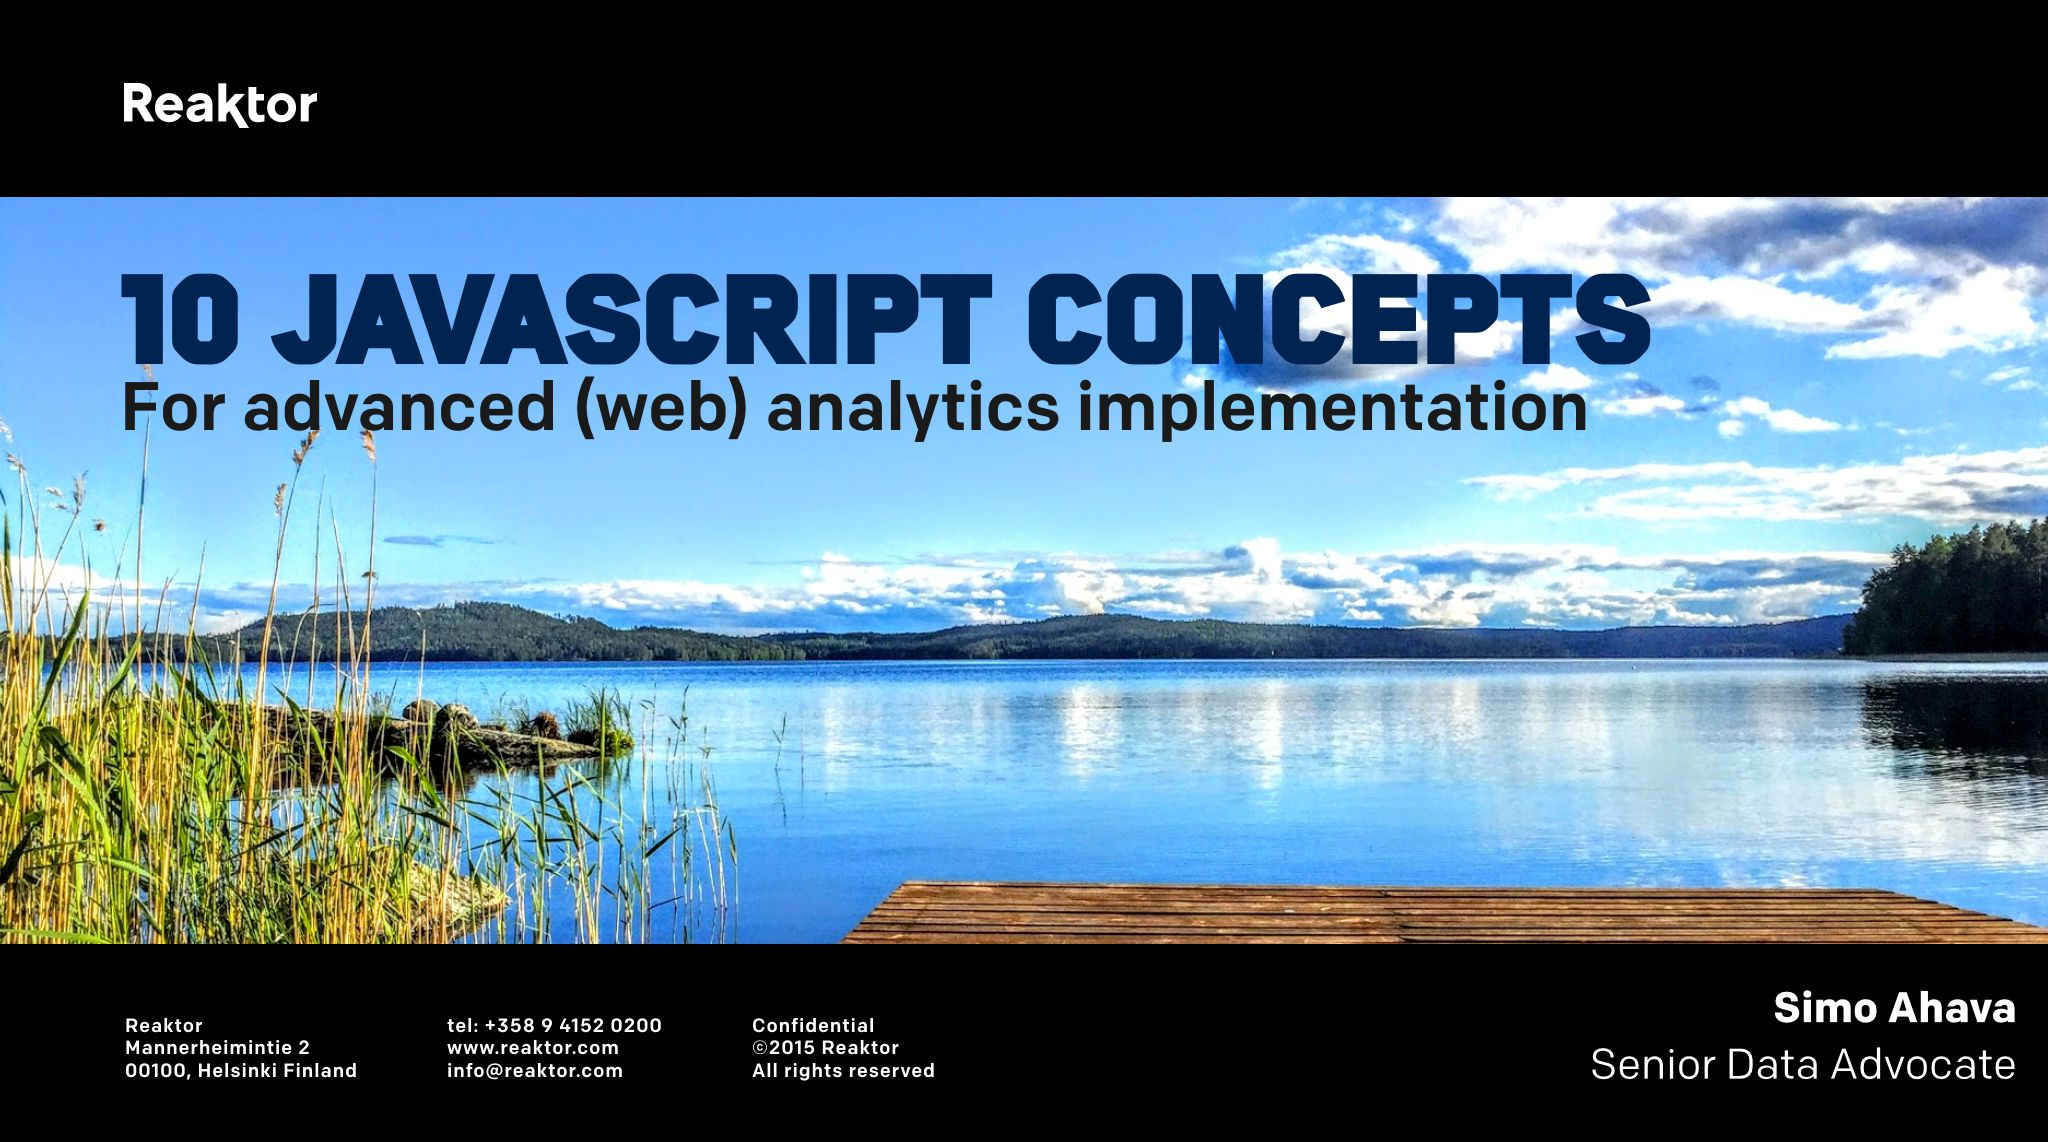 10 JavaScript Concepts For Web Analytics Implementation | Simo